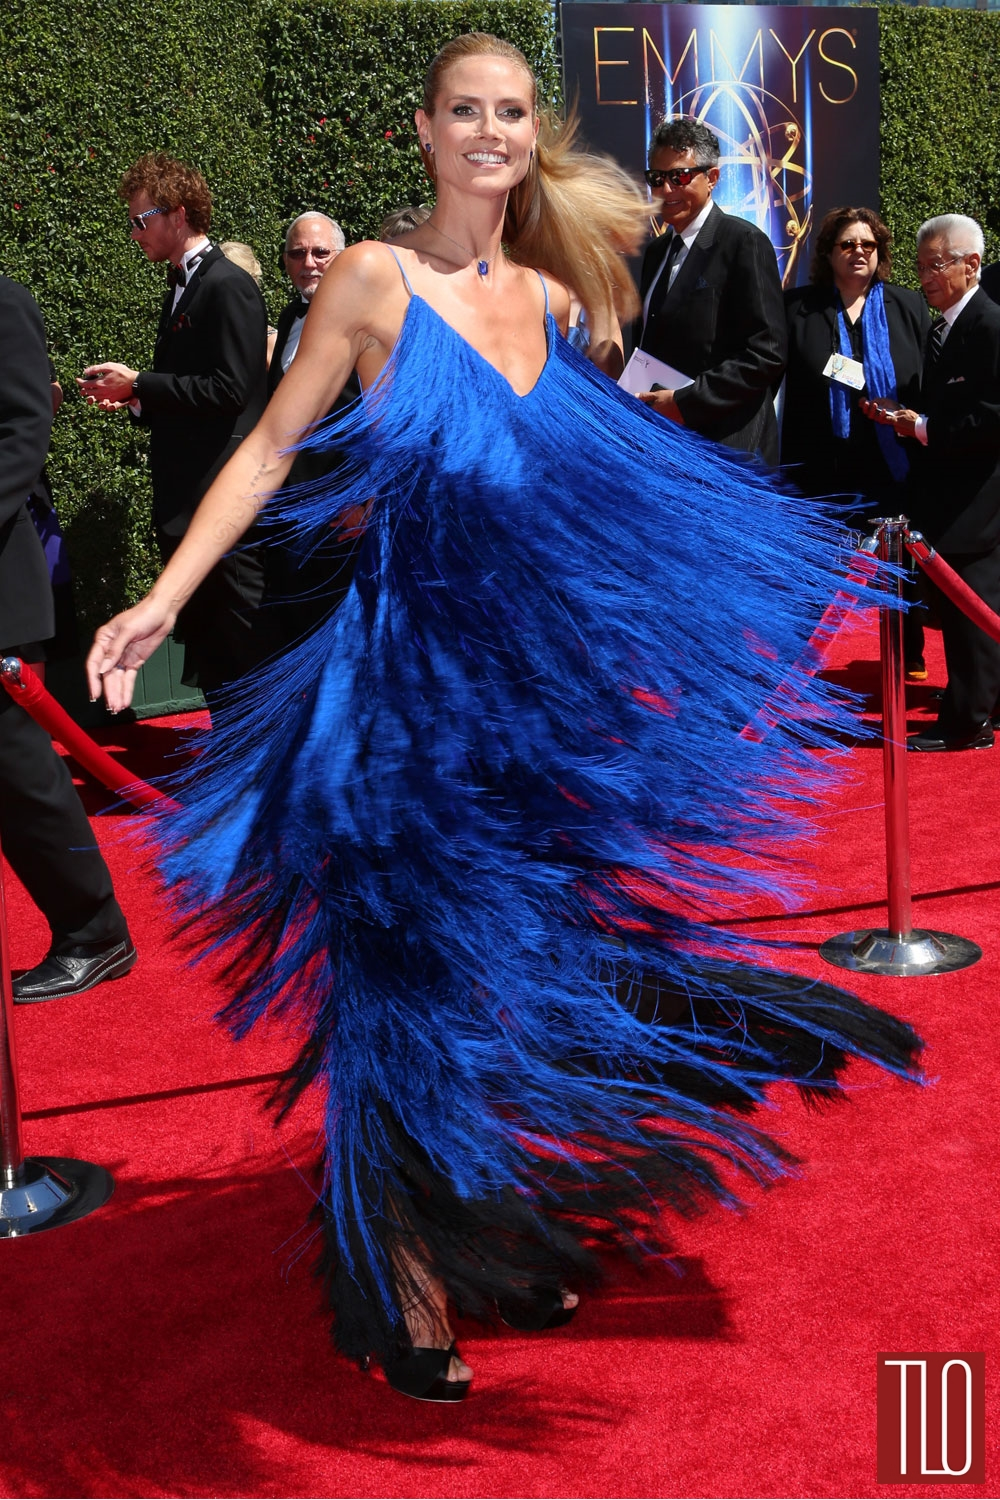 Heidi-Klum-Project-Runway-Contestant-Sean-Kelly-2014-Creative-Arts-Emmy-Awards-Red-Carpet-Tom-Lorenzo-Site-TLO (1)